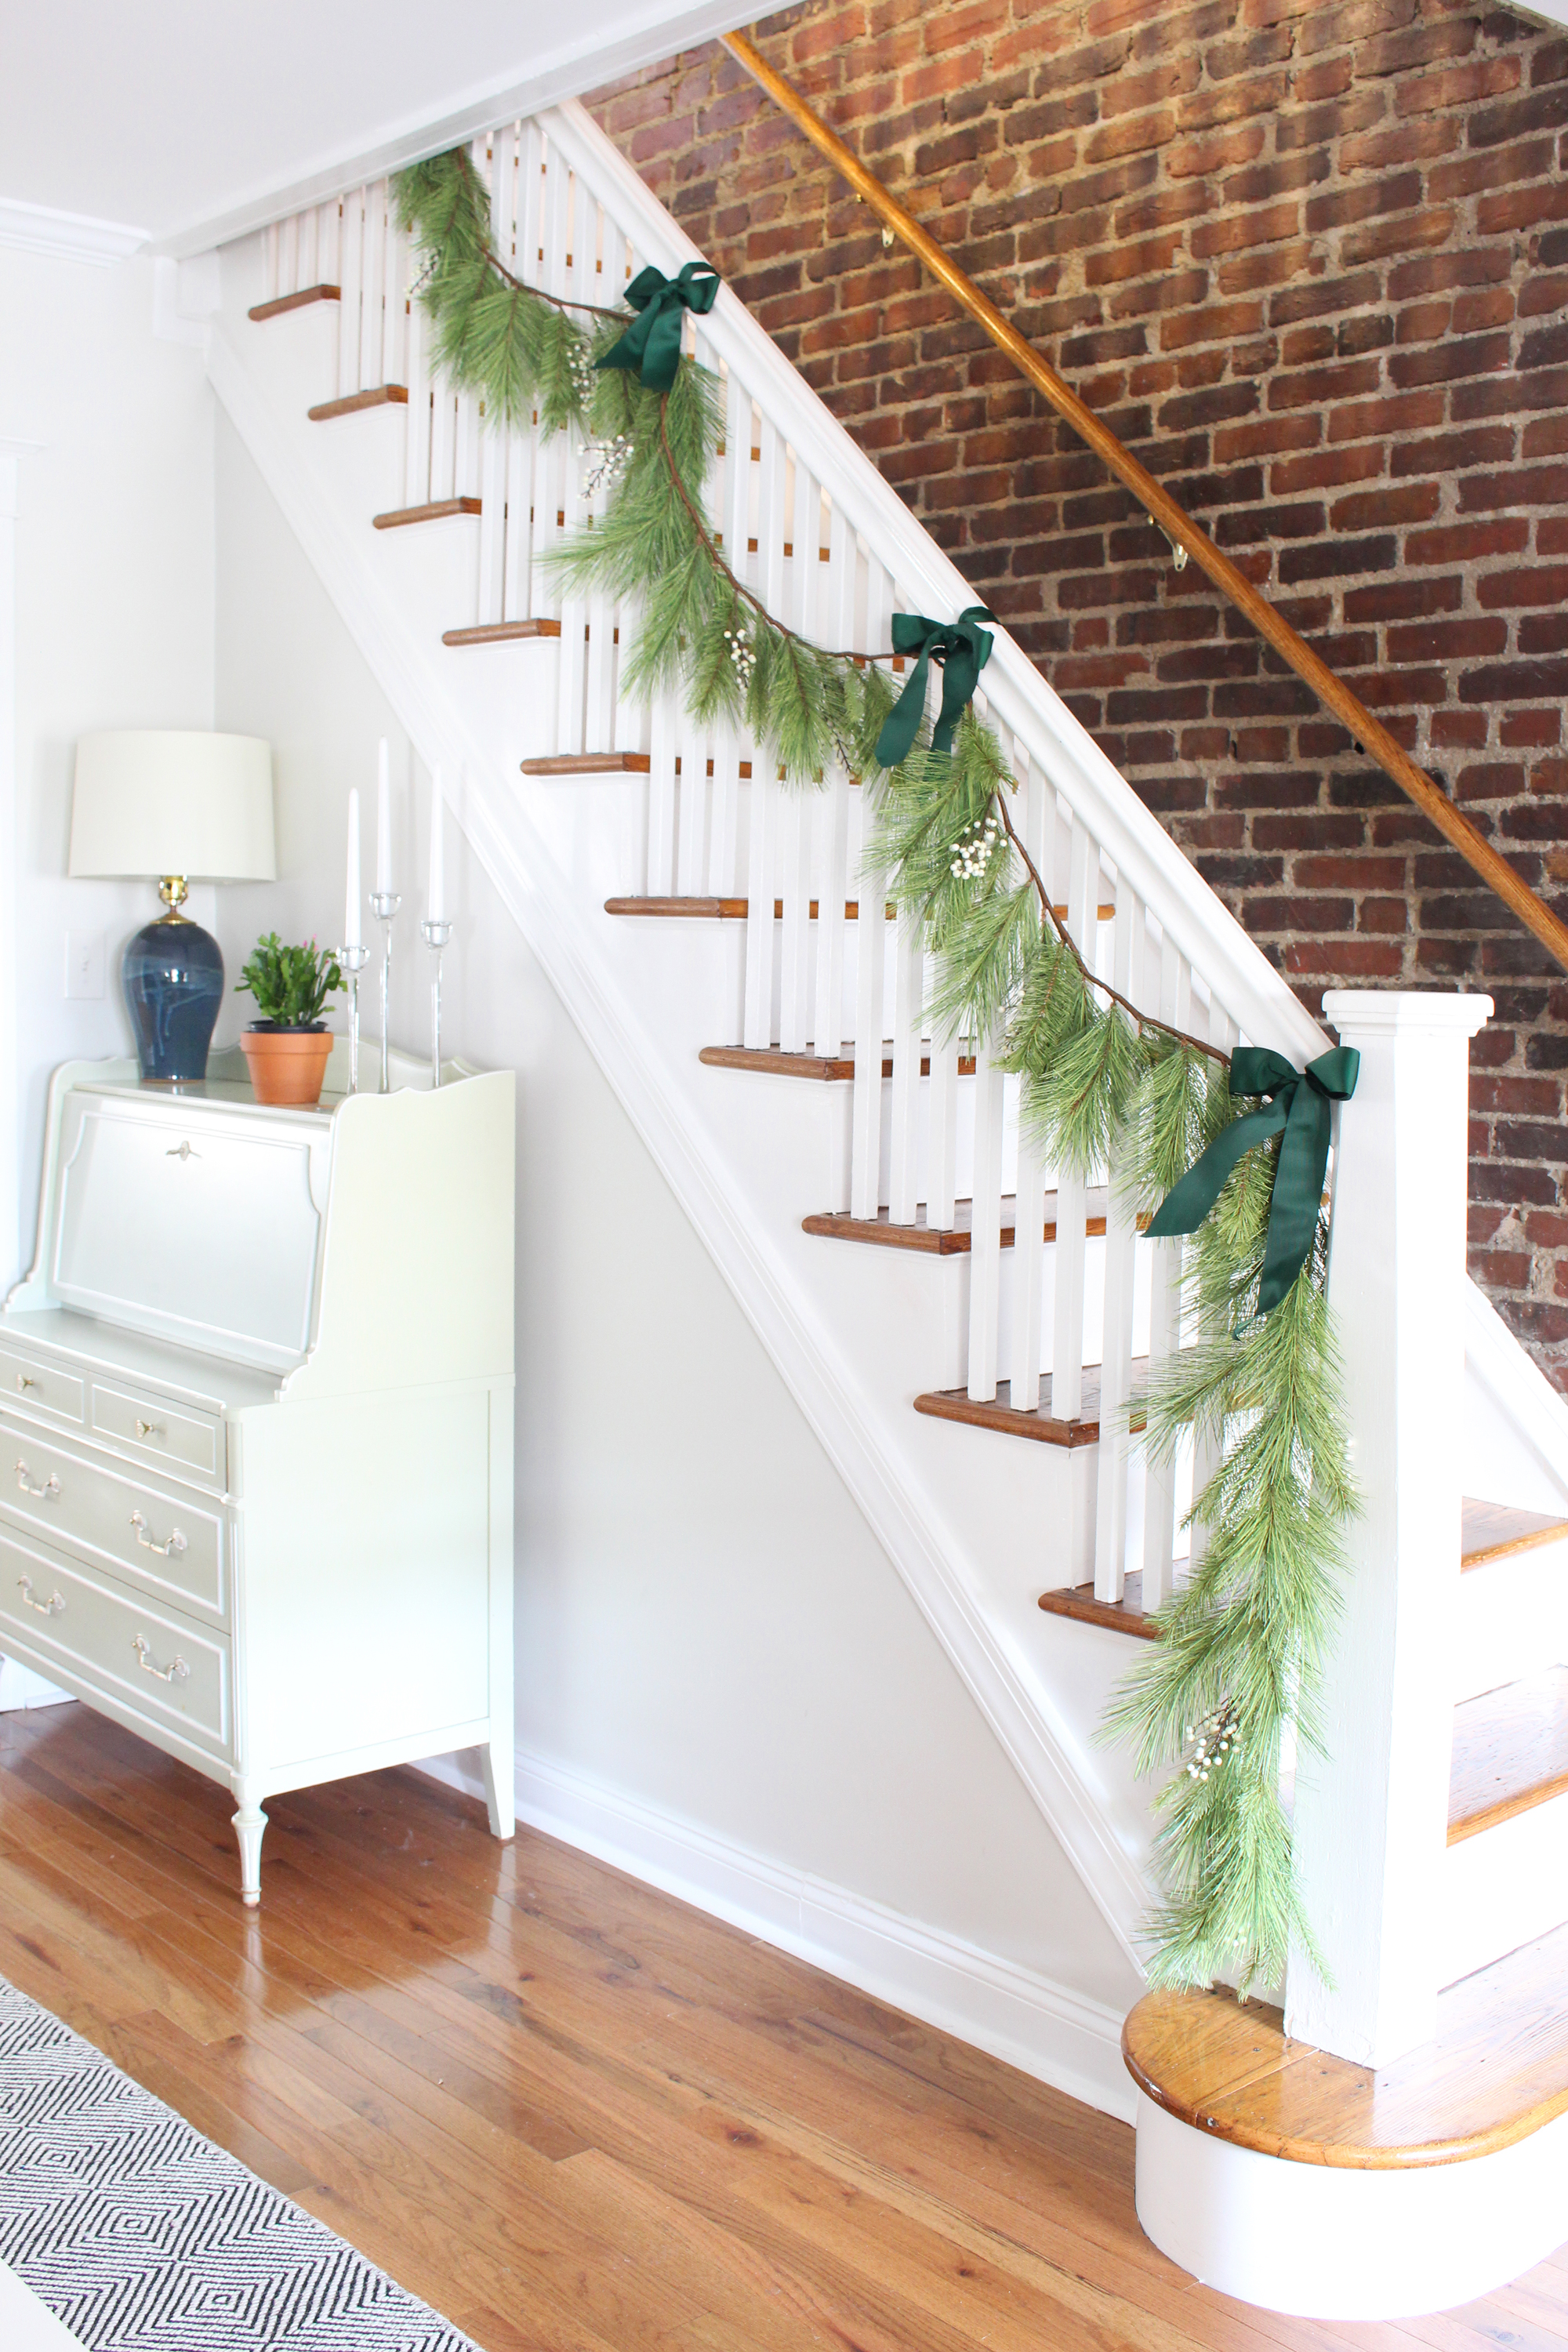 Hang artificial or real garland on your stair railing as Christmas decor. For more simple holiday decorating ideas, head to the Mix & Match blog!// simple Christmas decor, simple holiday decor, minimalist Christmas decorations